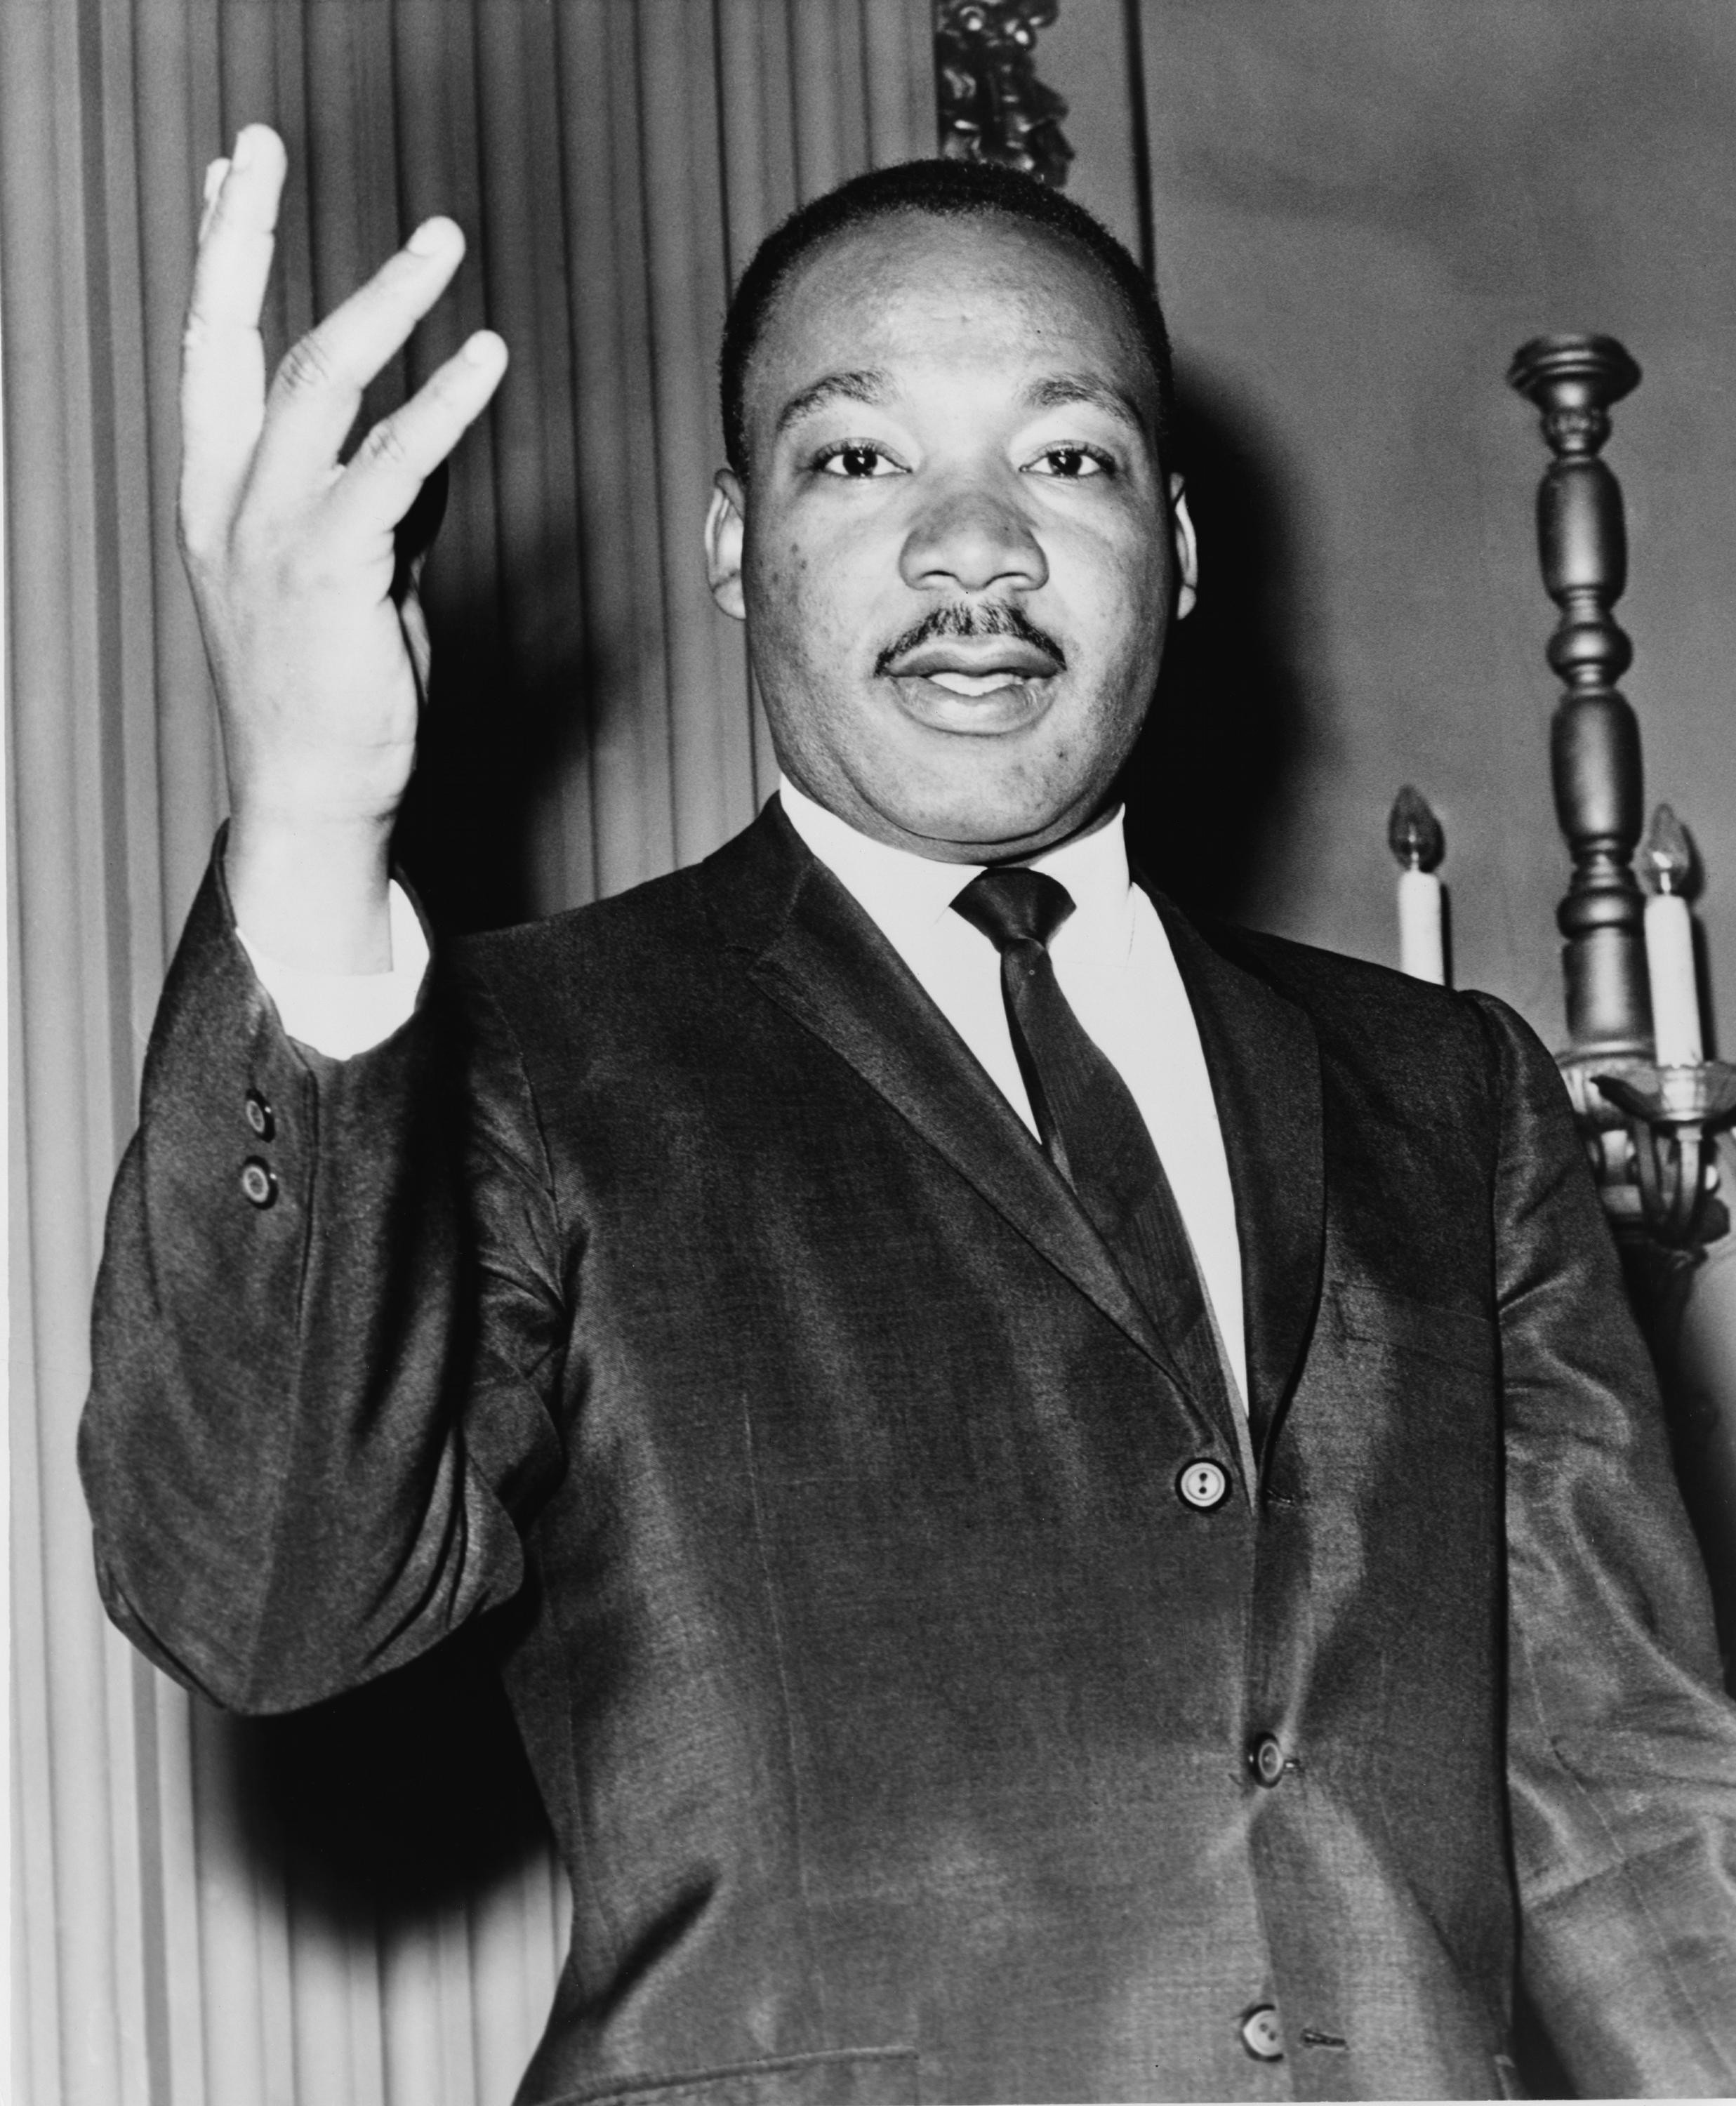 Martin Luther King Jr | Free Images at Clker.com - vector ...